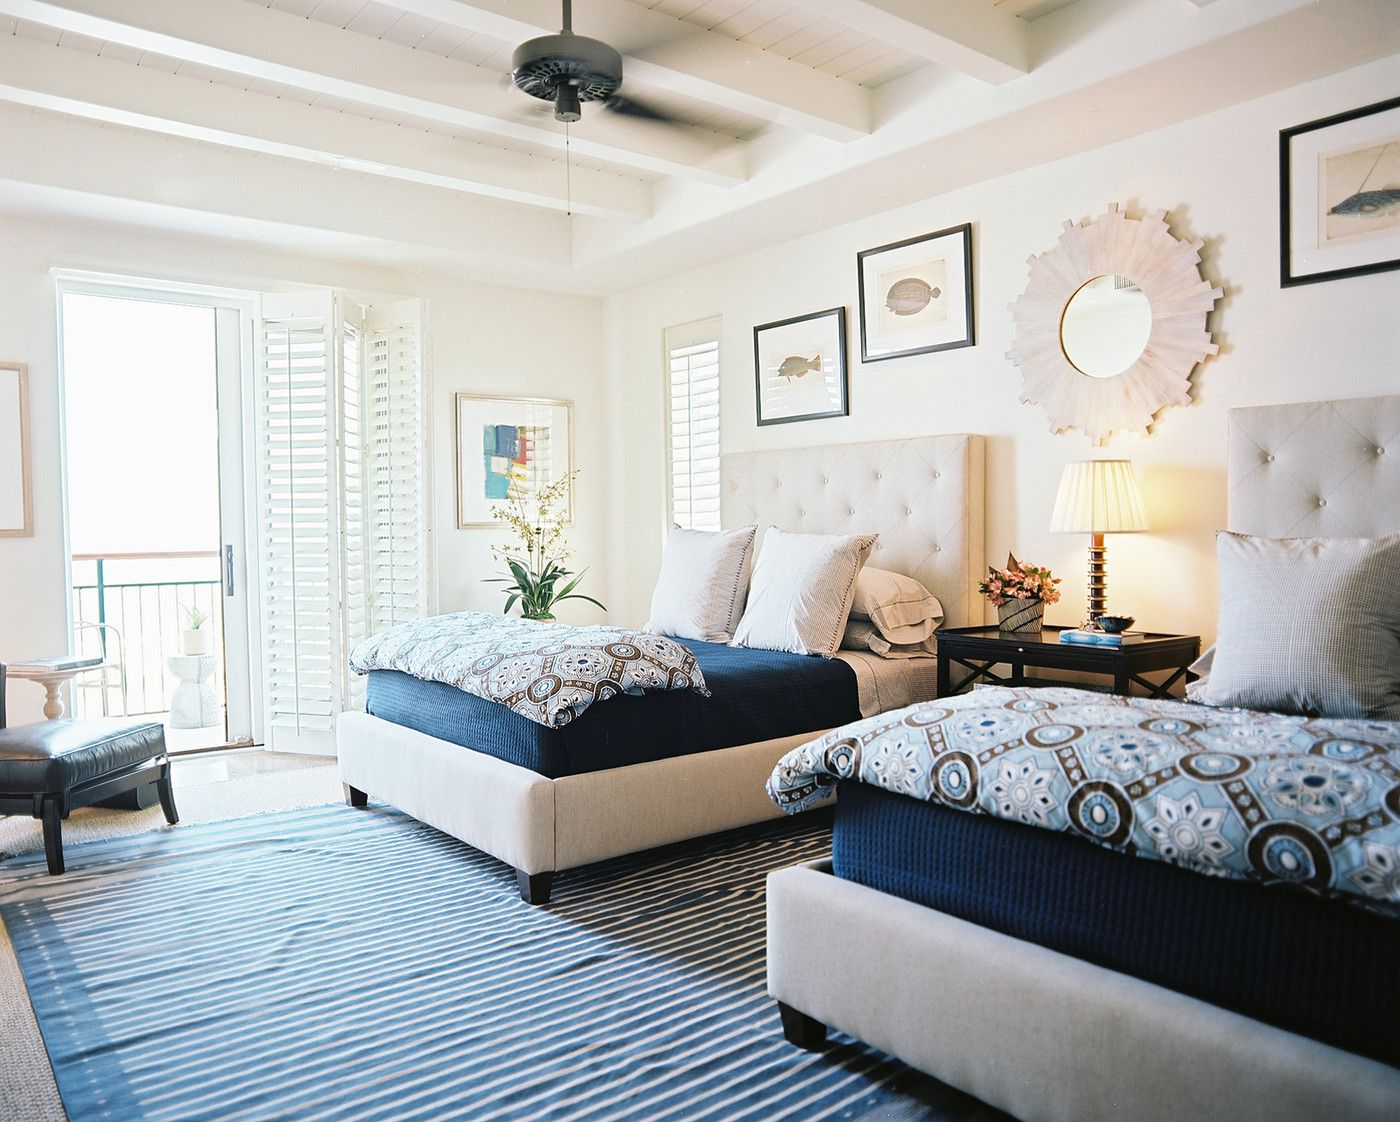 Best Sea Island Sanctuary Bungalow Interiors Bedroom Decor 400 x 300